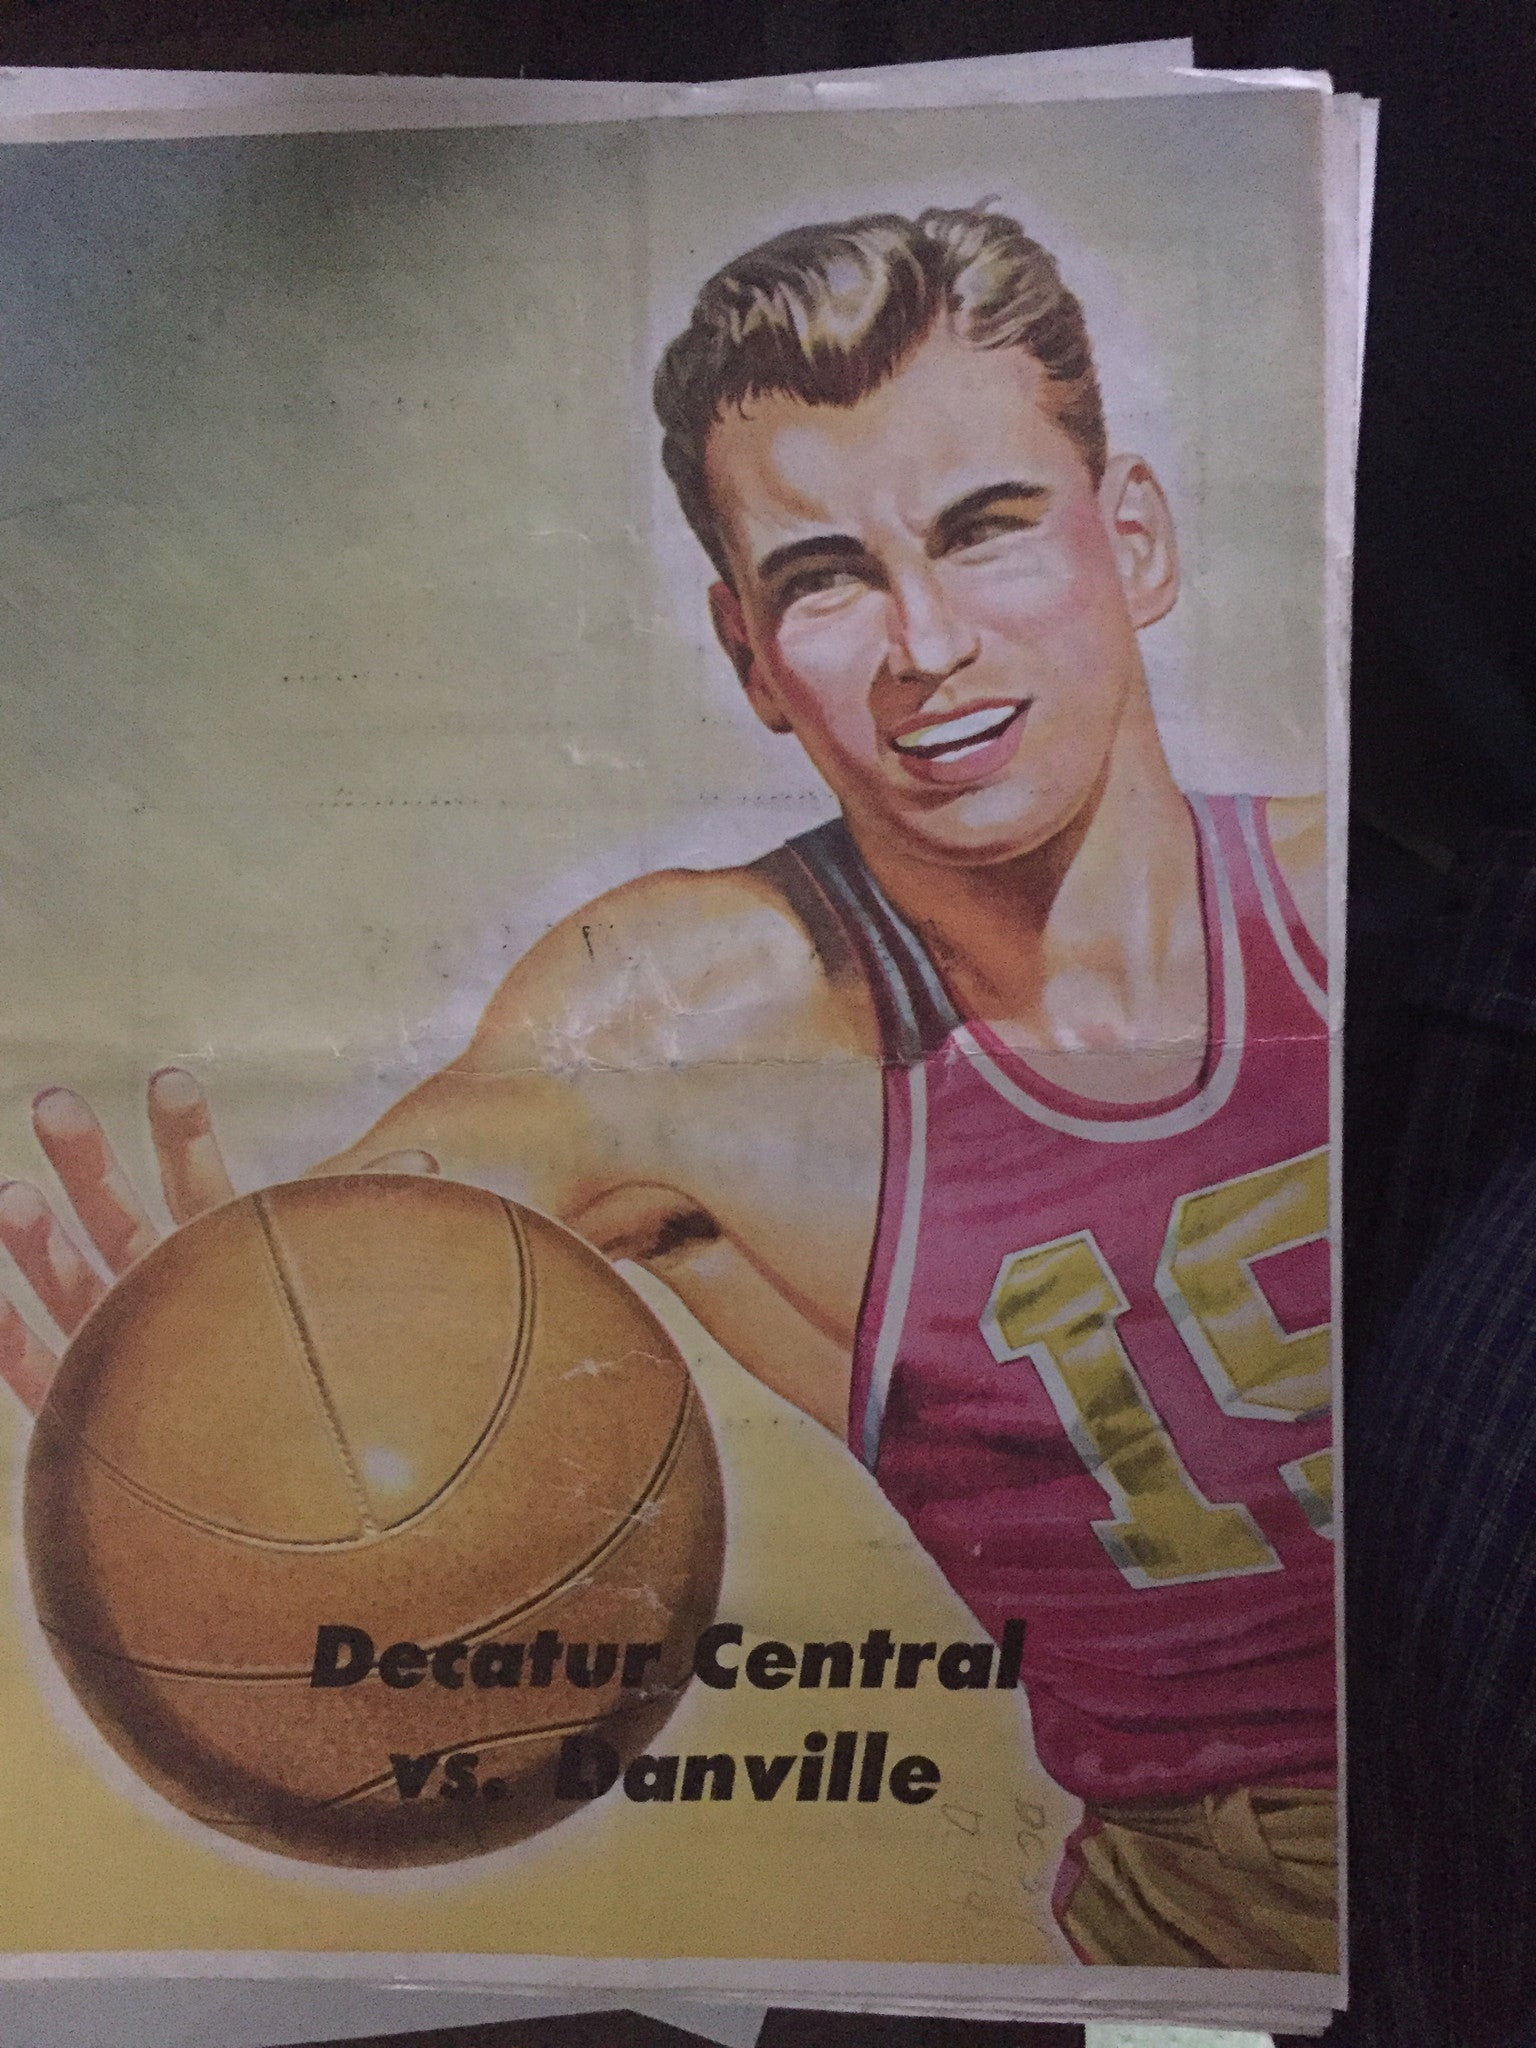 1951 Decatur Central vs Danville Indiana High School Basketball Program - Vintage Indy Sports